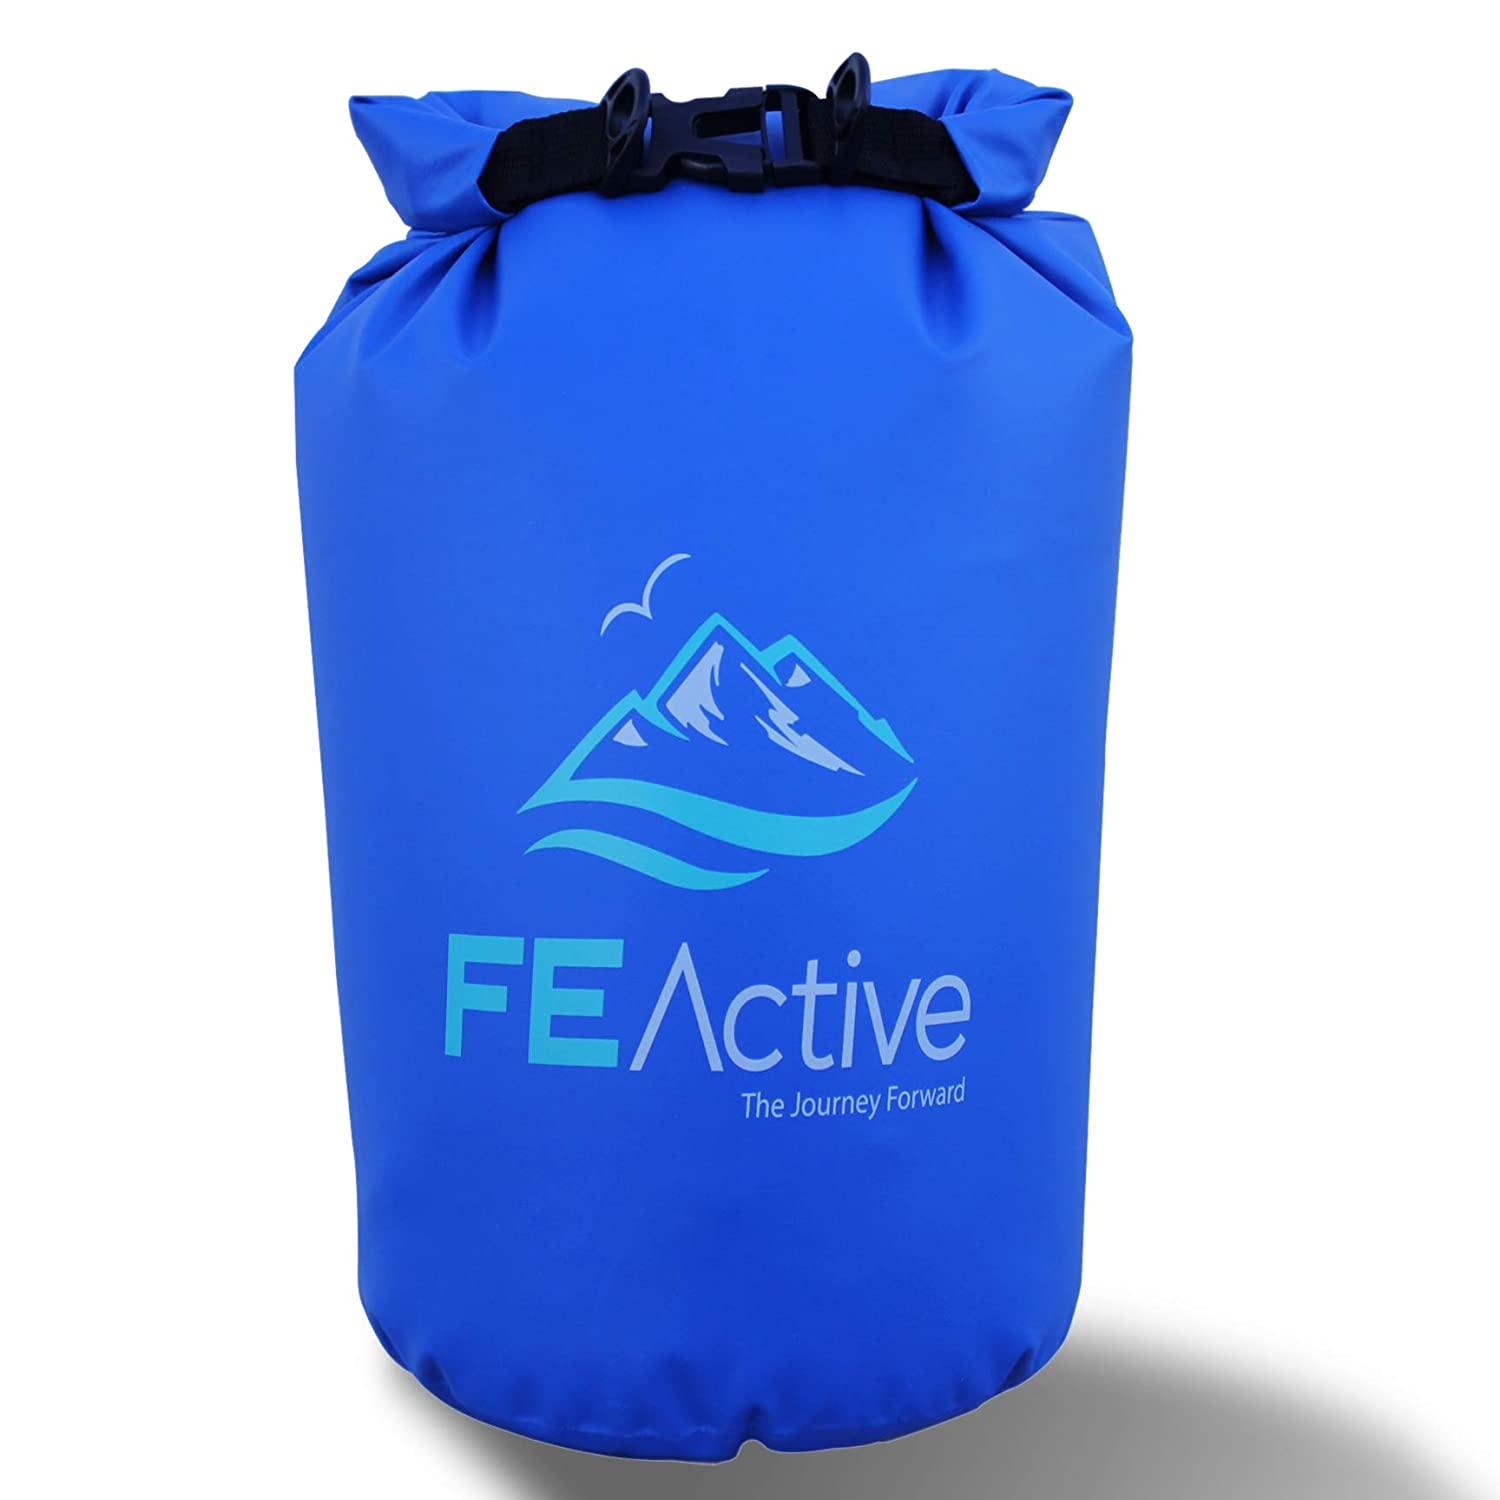 FE Active - 15L Eco Friendly Waterproof Dry Bag Sack Great for all Outdoor and Water related activities. Lined rim at the opening for maximum insulation when compressing Carrying strap included Black FE-090411